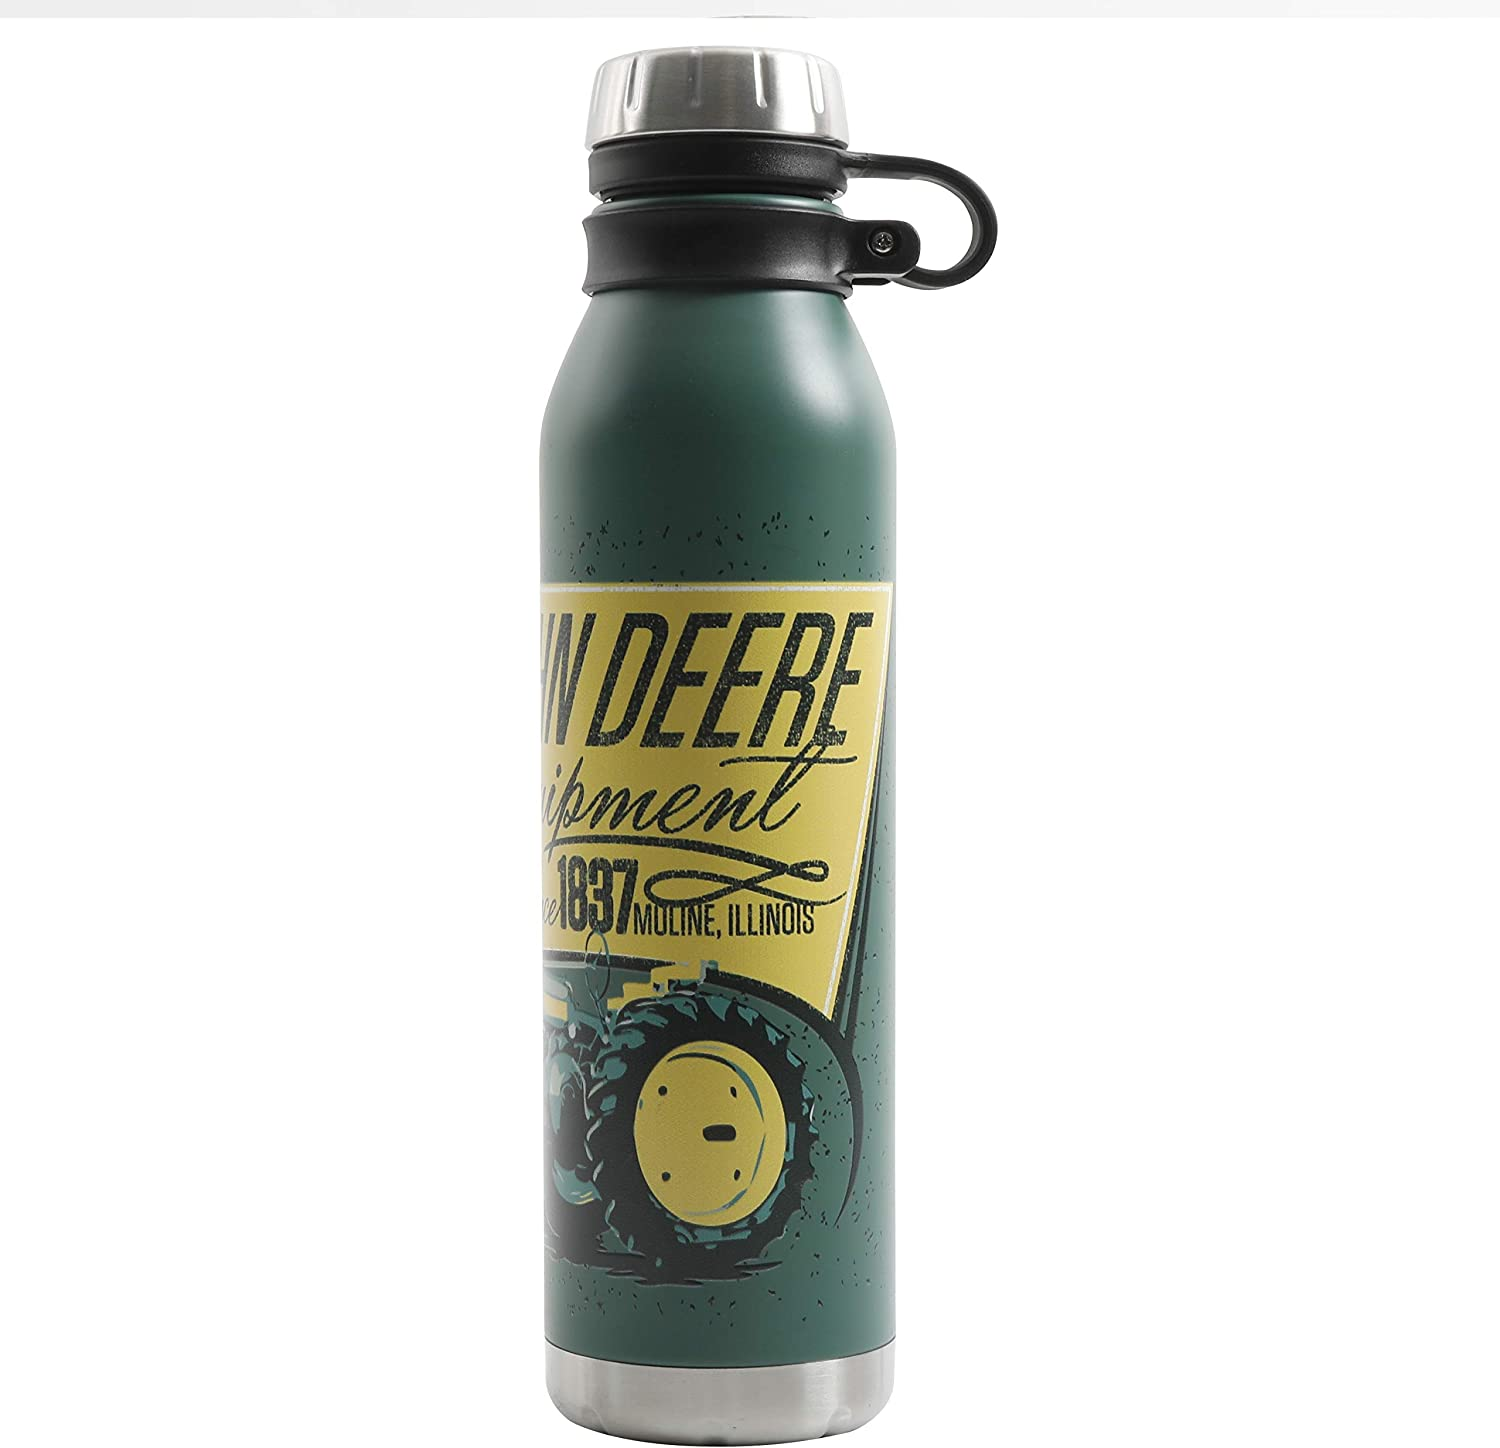 Gibson John Deere Thermal Double Wall Stainless Steel, 22.5oz Original Tractor Bottle, Green